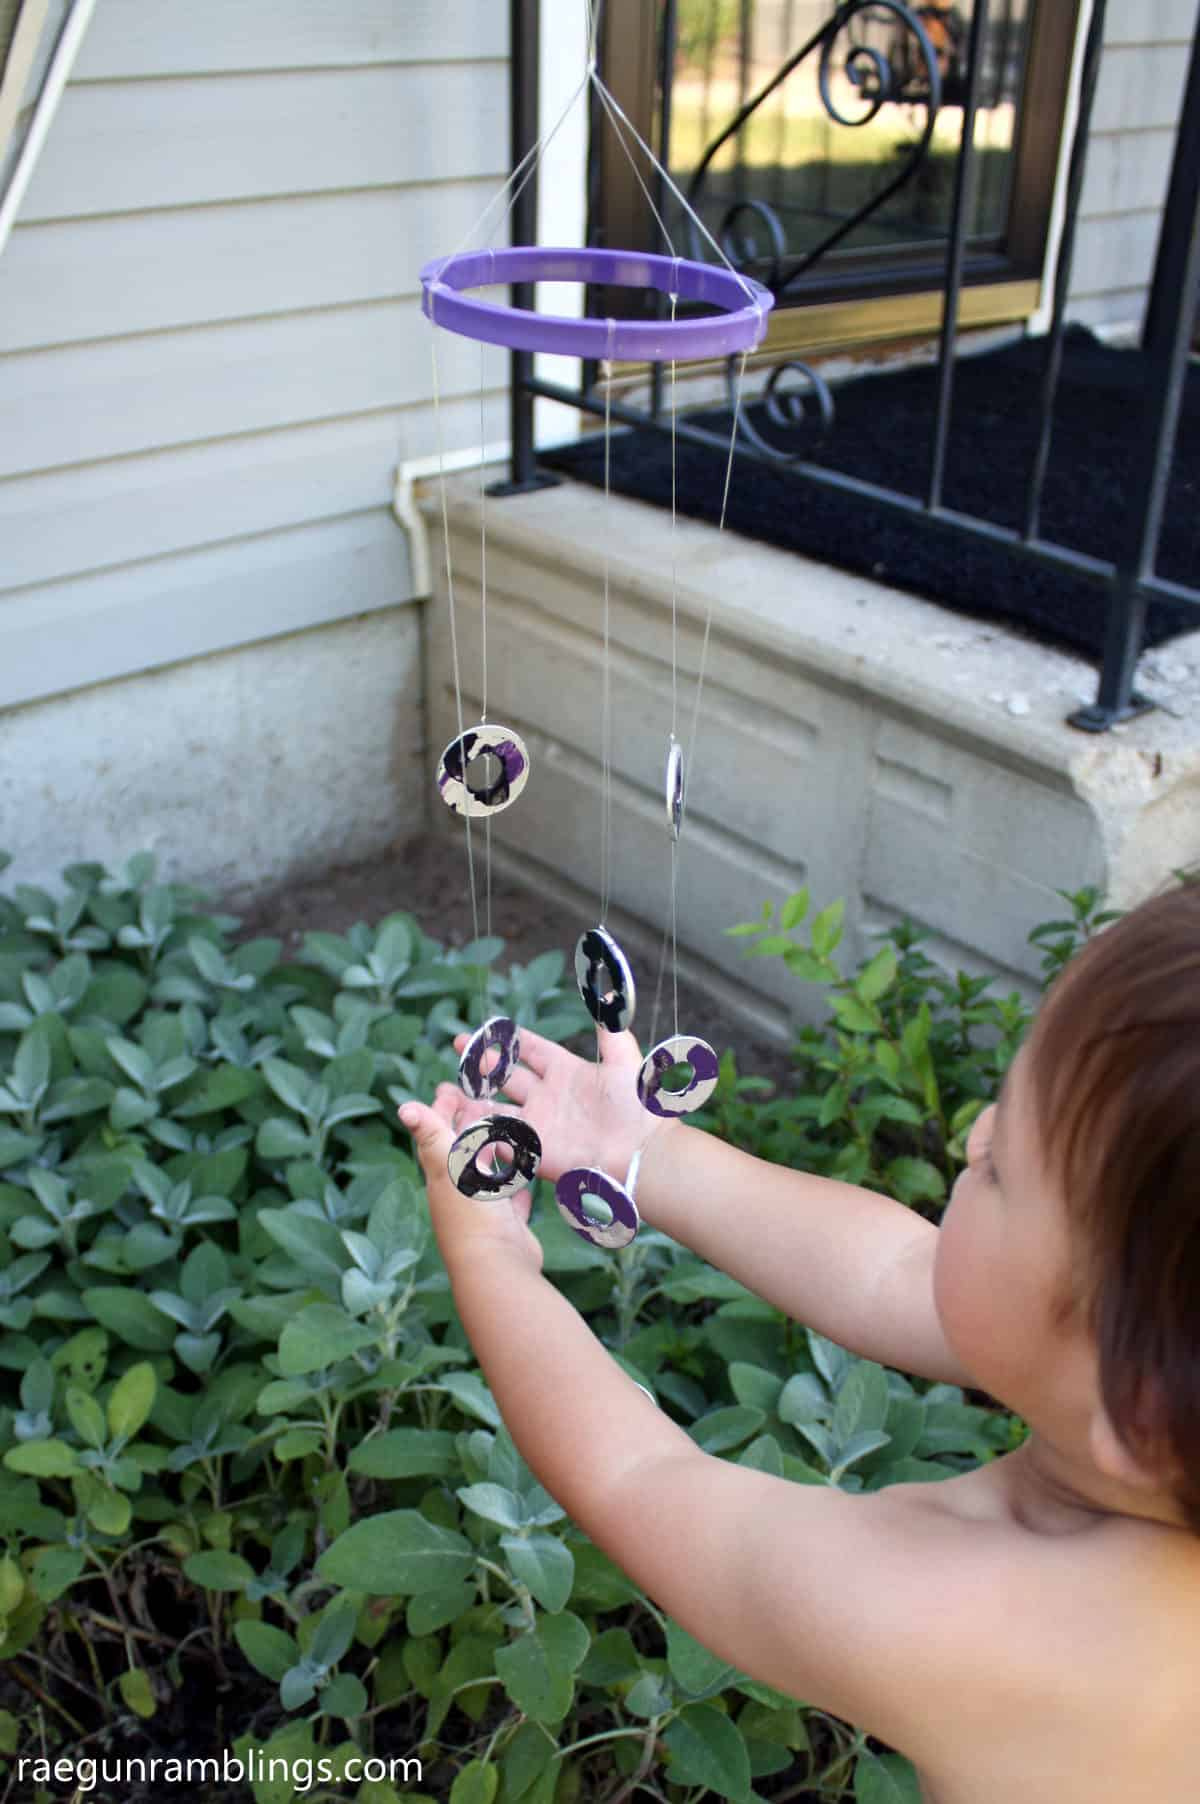 Fun and easy kids activity. DIY wind chime with step by step tutorial instructions